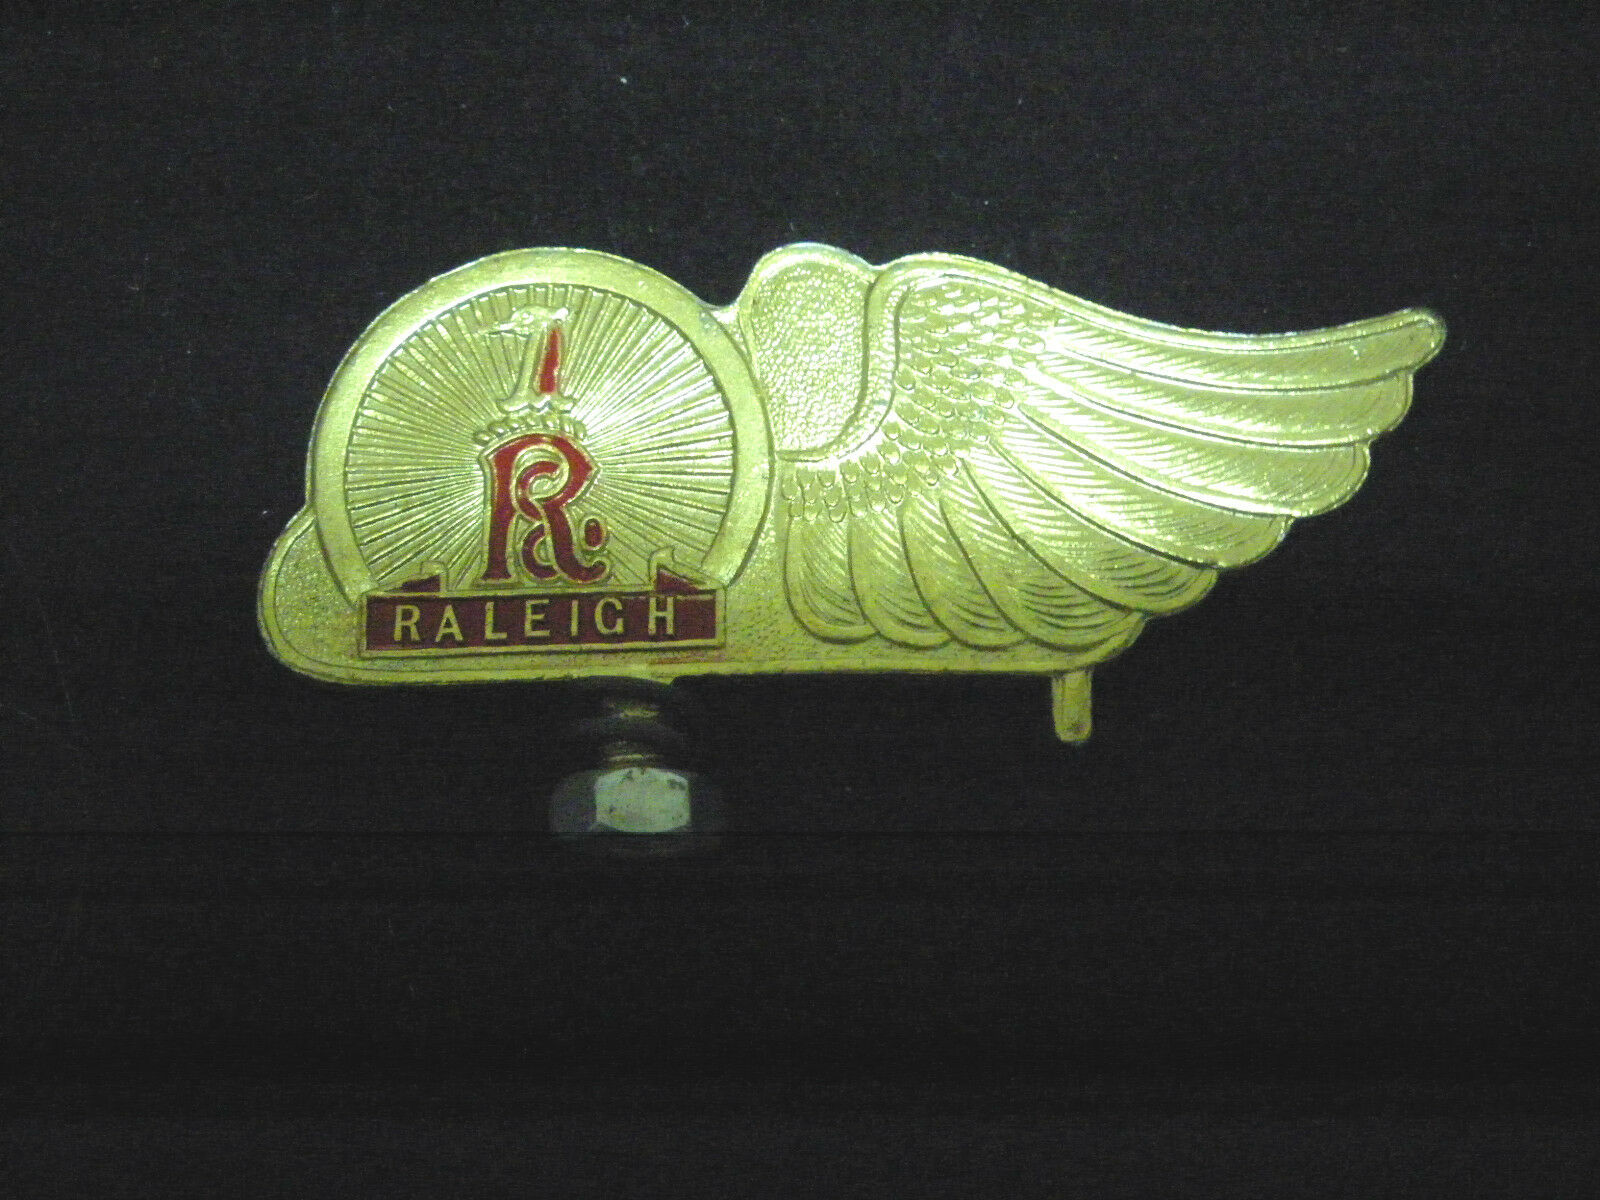 Vintage RALEIGH  Bicycle front mudguard Emblem Badge Bike gold NOS 1950s